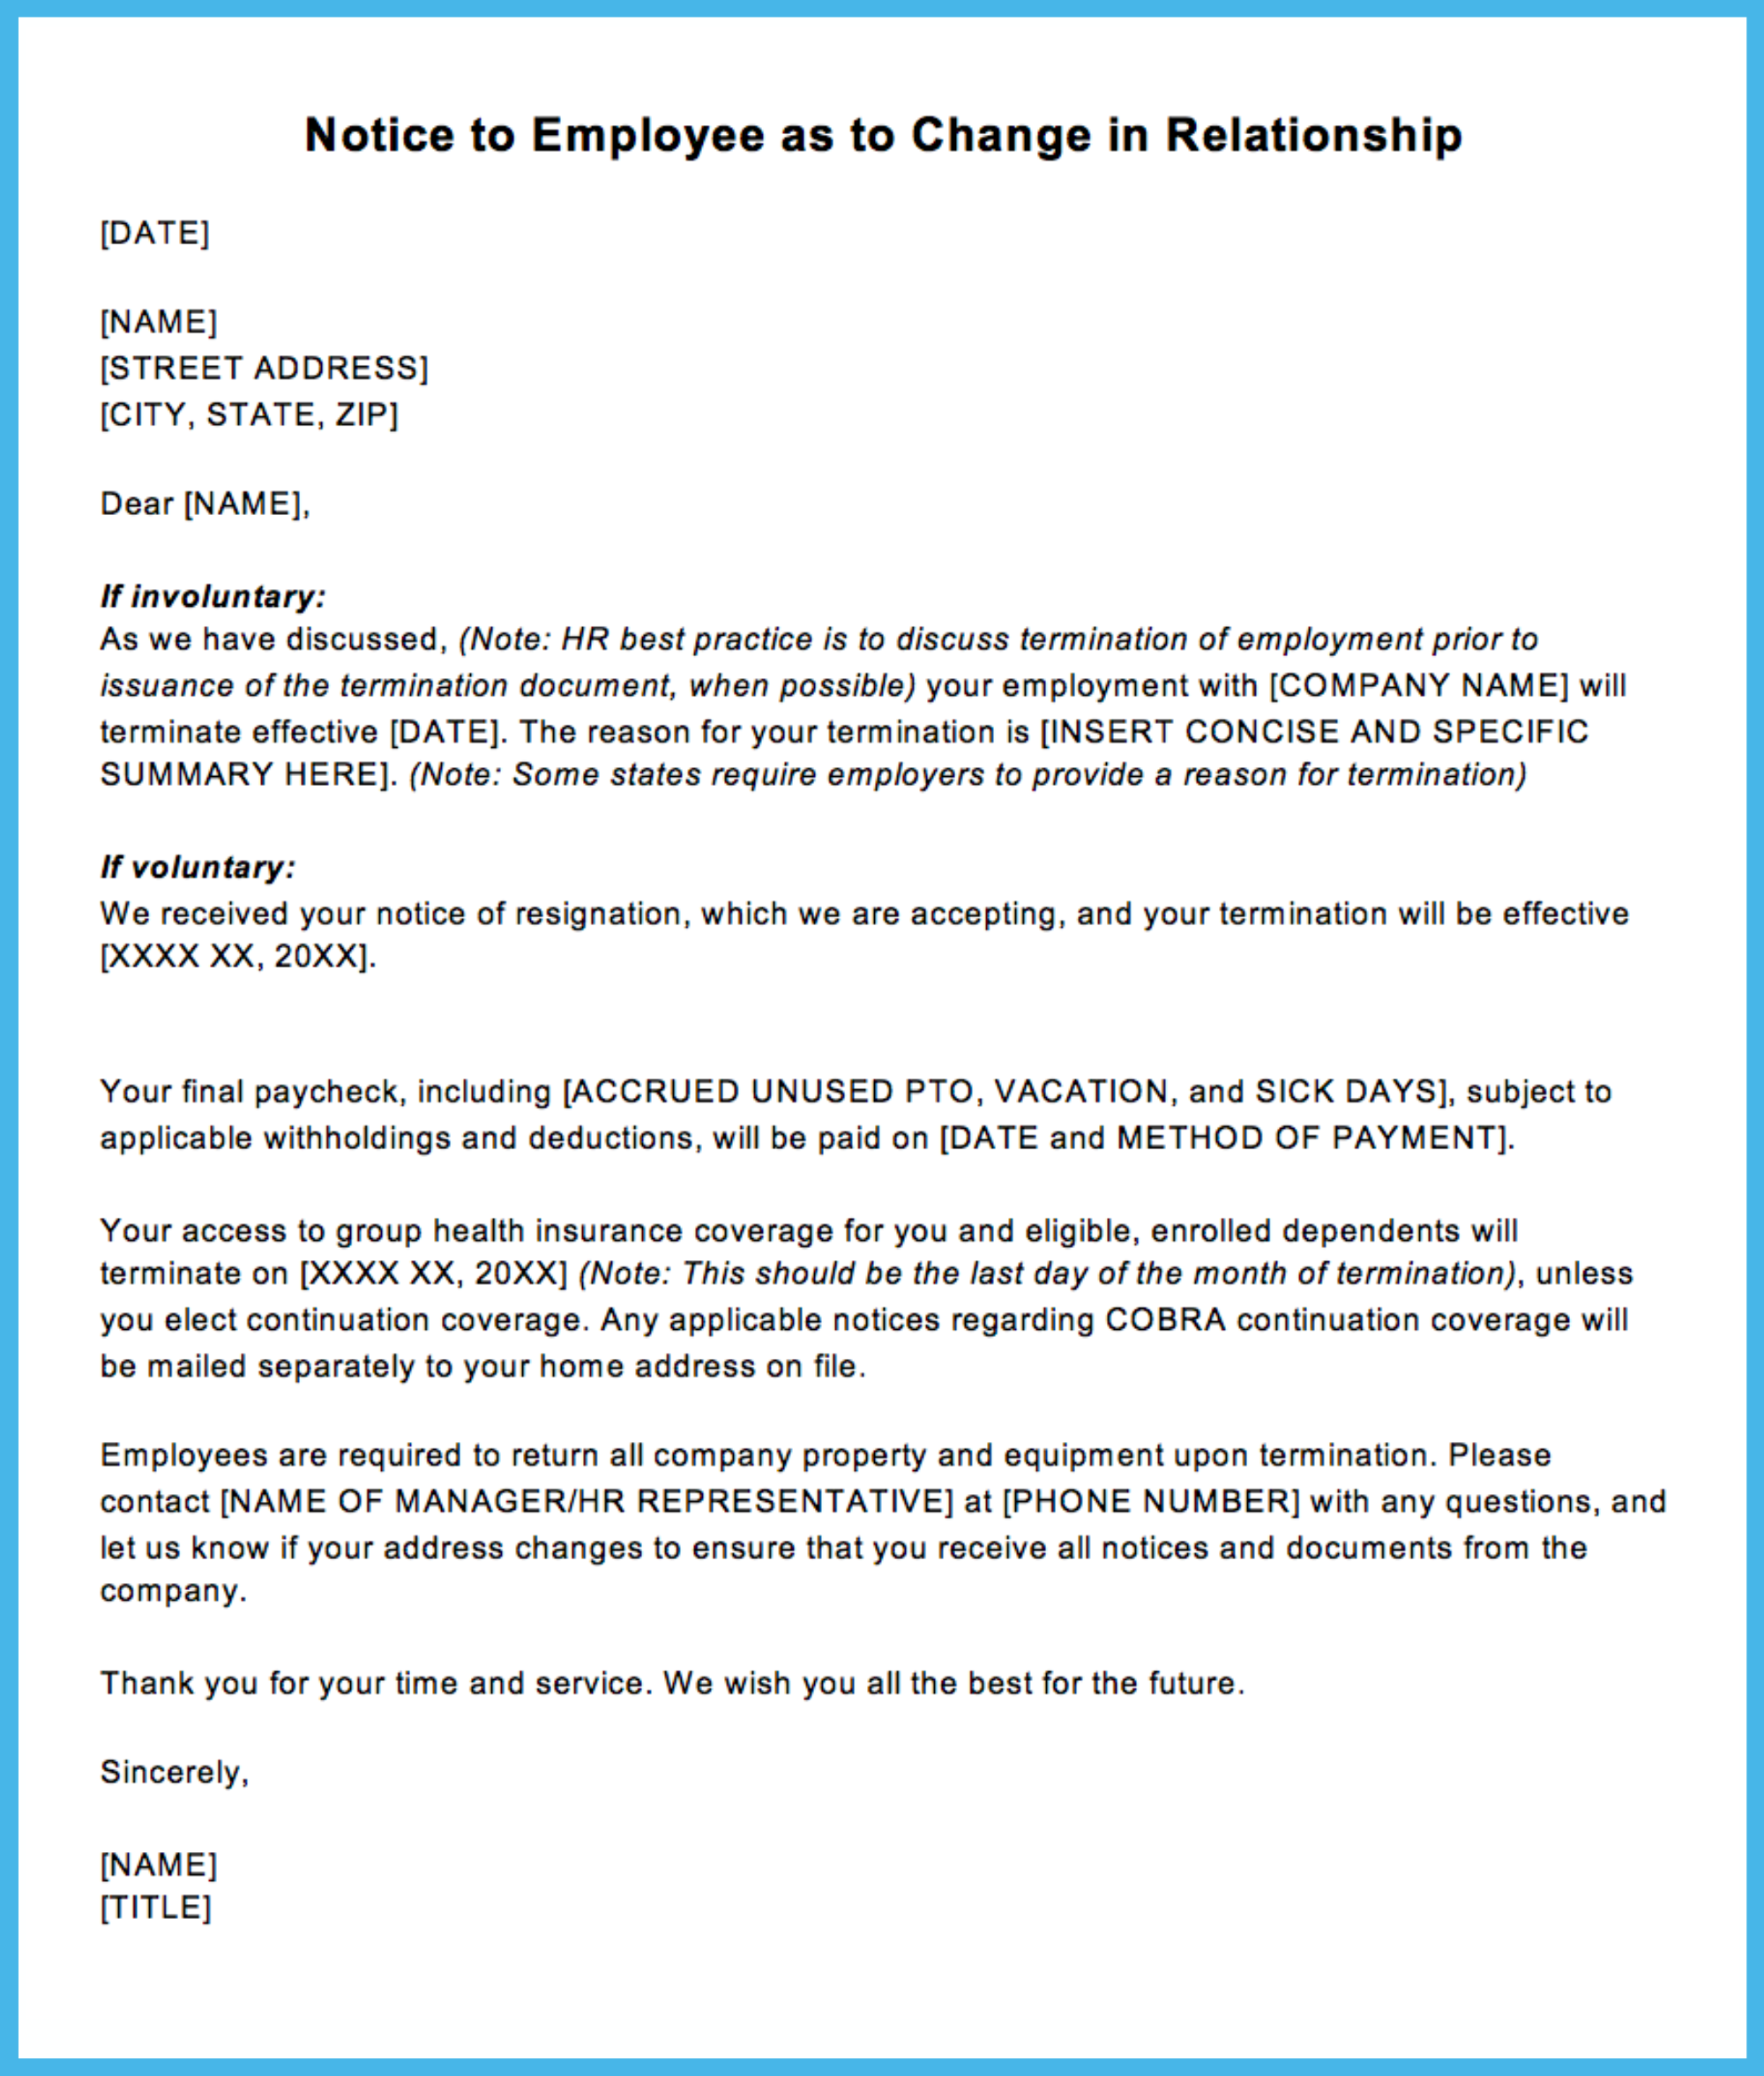 employee termination letter  Sample Termination Letter for Letting an Employee Go | Justworks